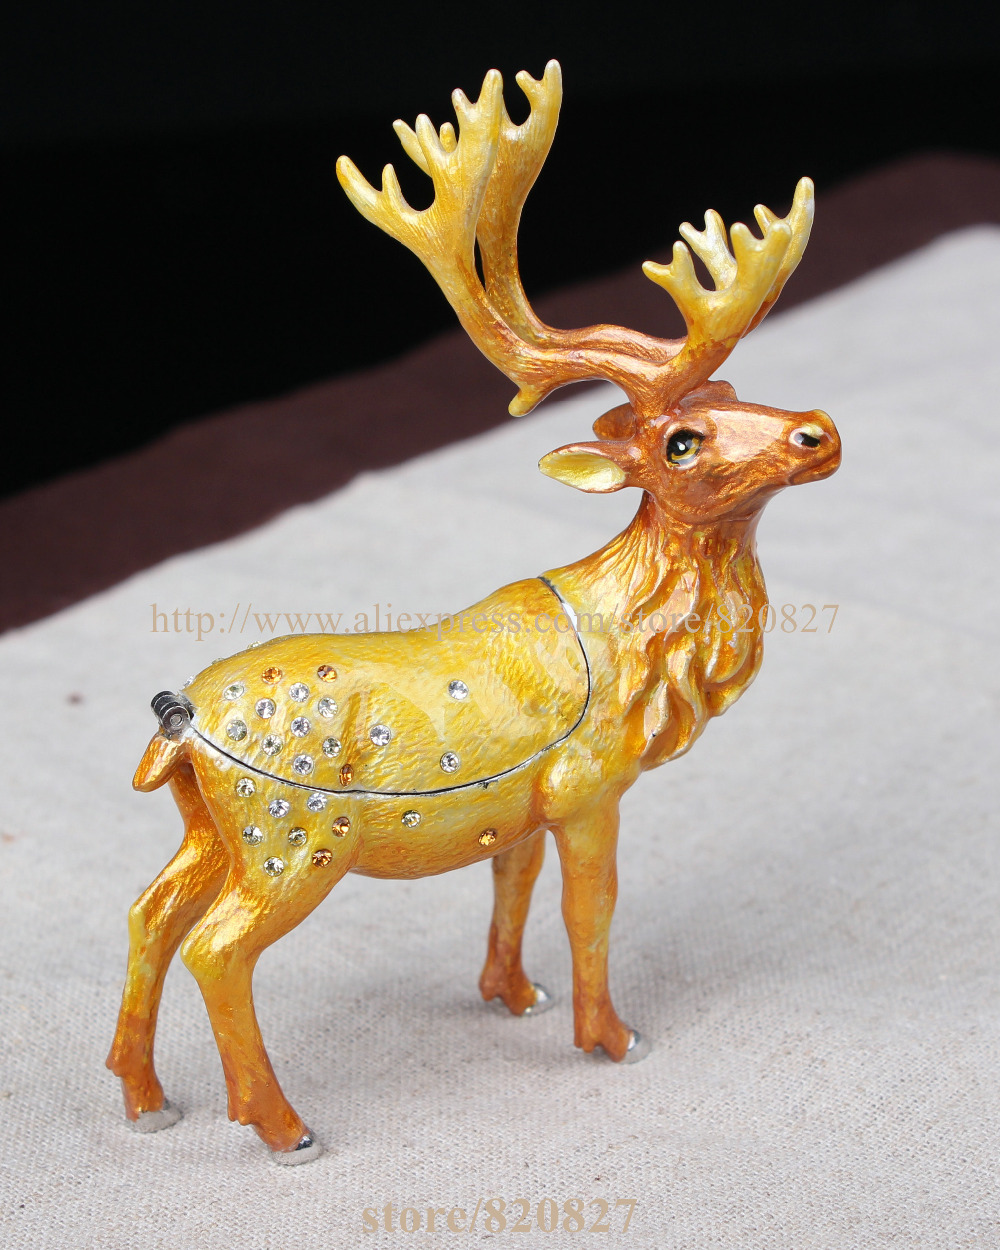 Collectible Deer Jewelry Box Reindeer-shaped Pill Box Deer Jeweled Trinket Box Enameled Pewter Bejeweled Musk Deer чайник электрический maxwell mw 1049 st